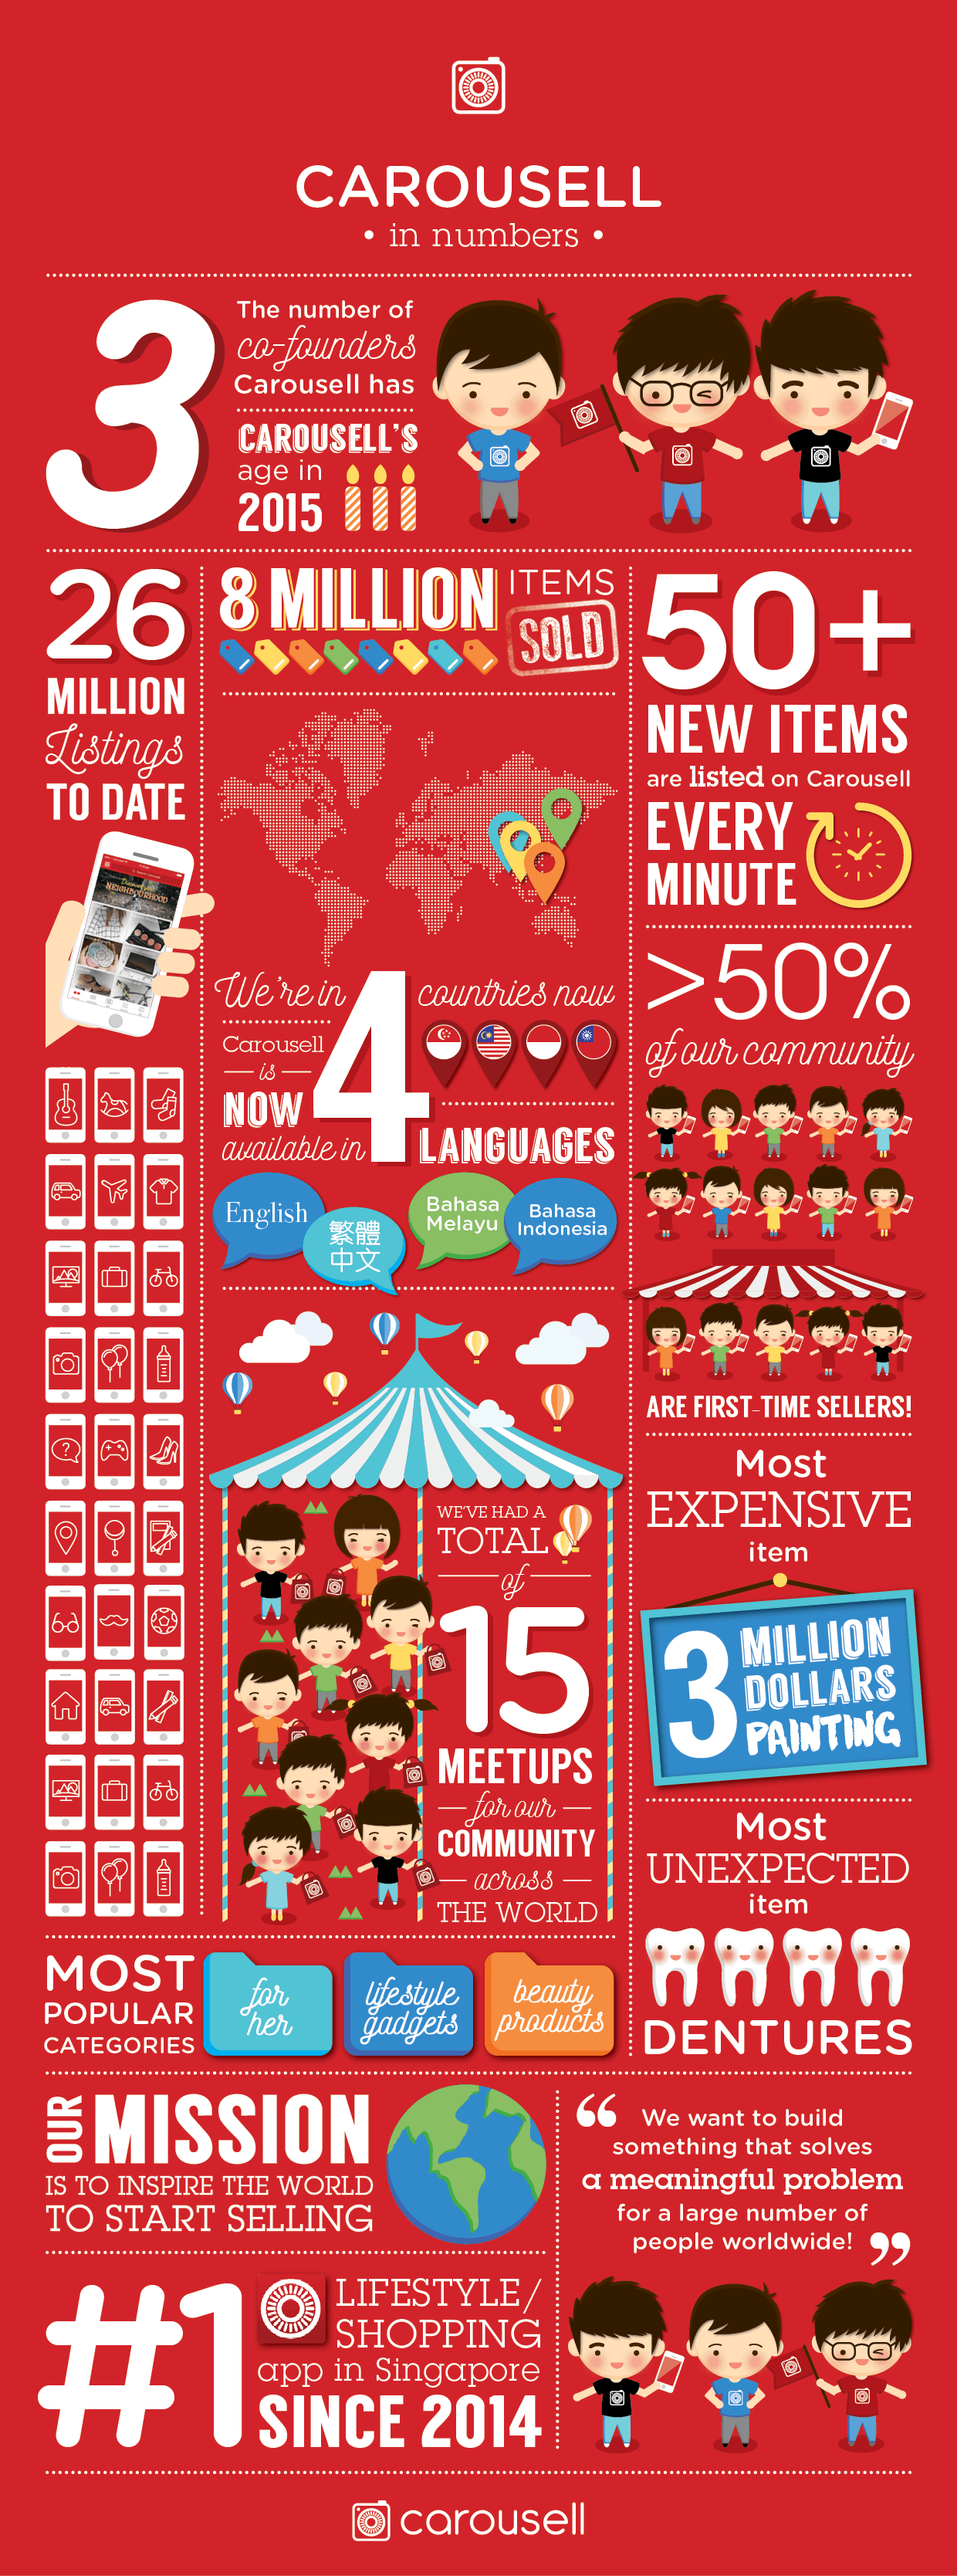 Carousell Infographic